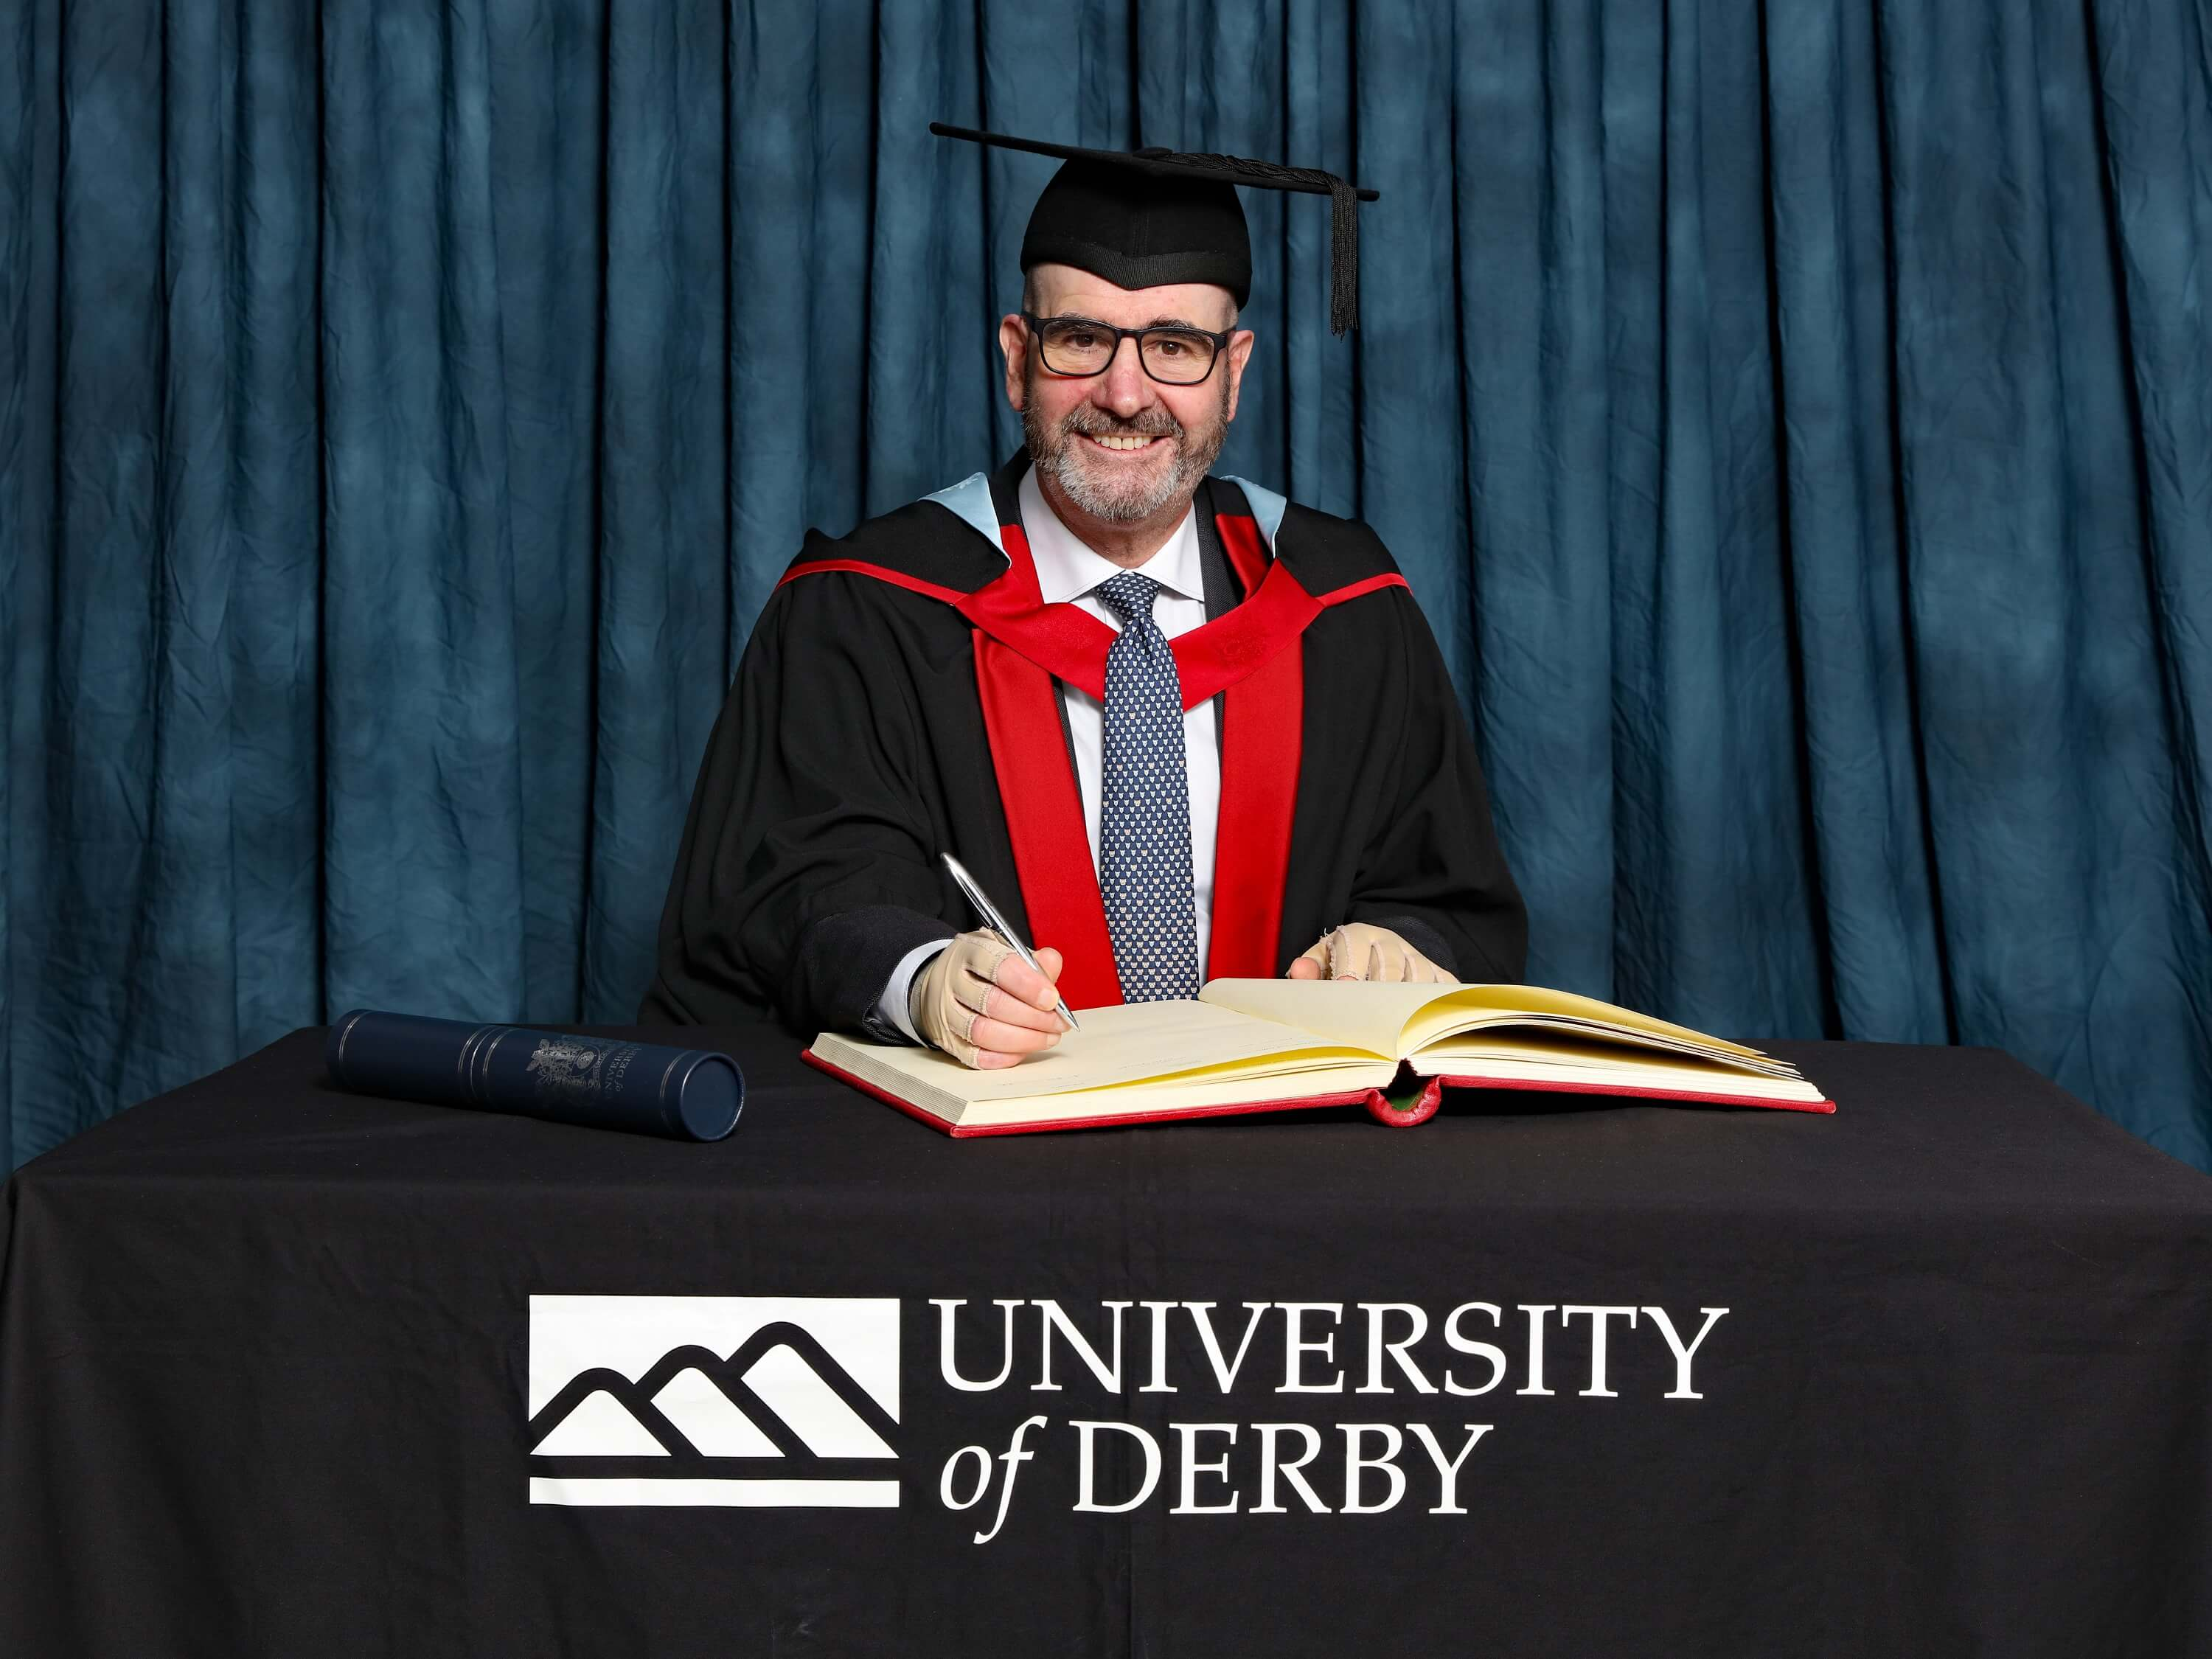 Steve Perez receives an Honorary Degree from the University